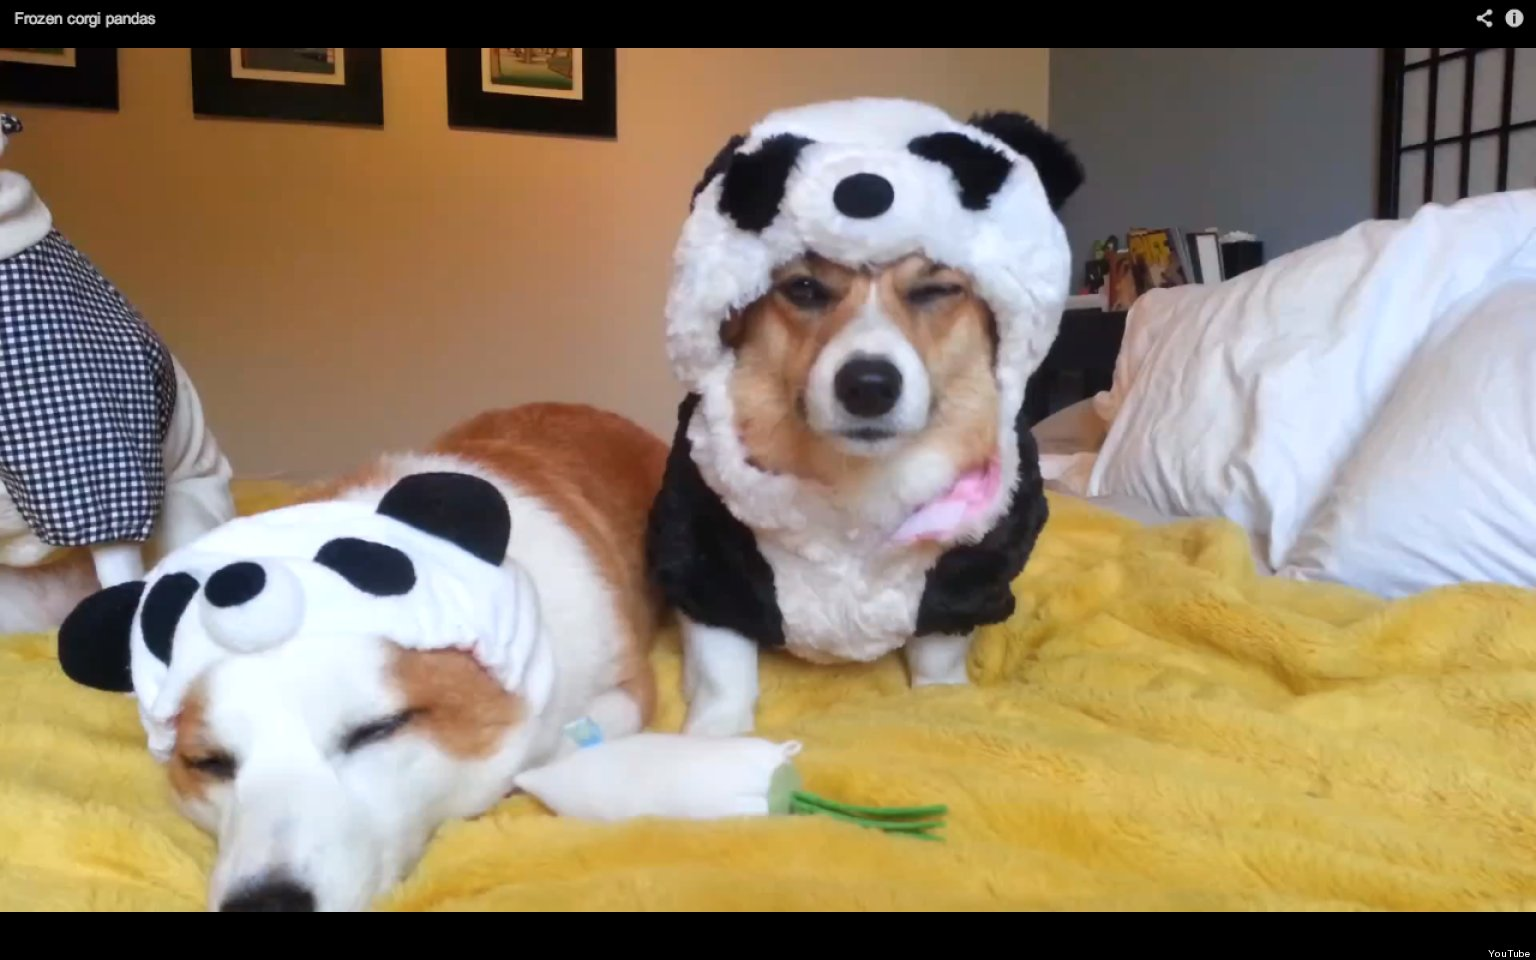 Panda Costume Cat Corgis in Panda Costumes Look